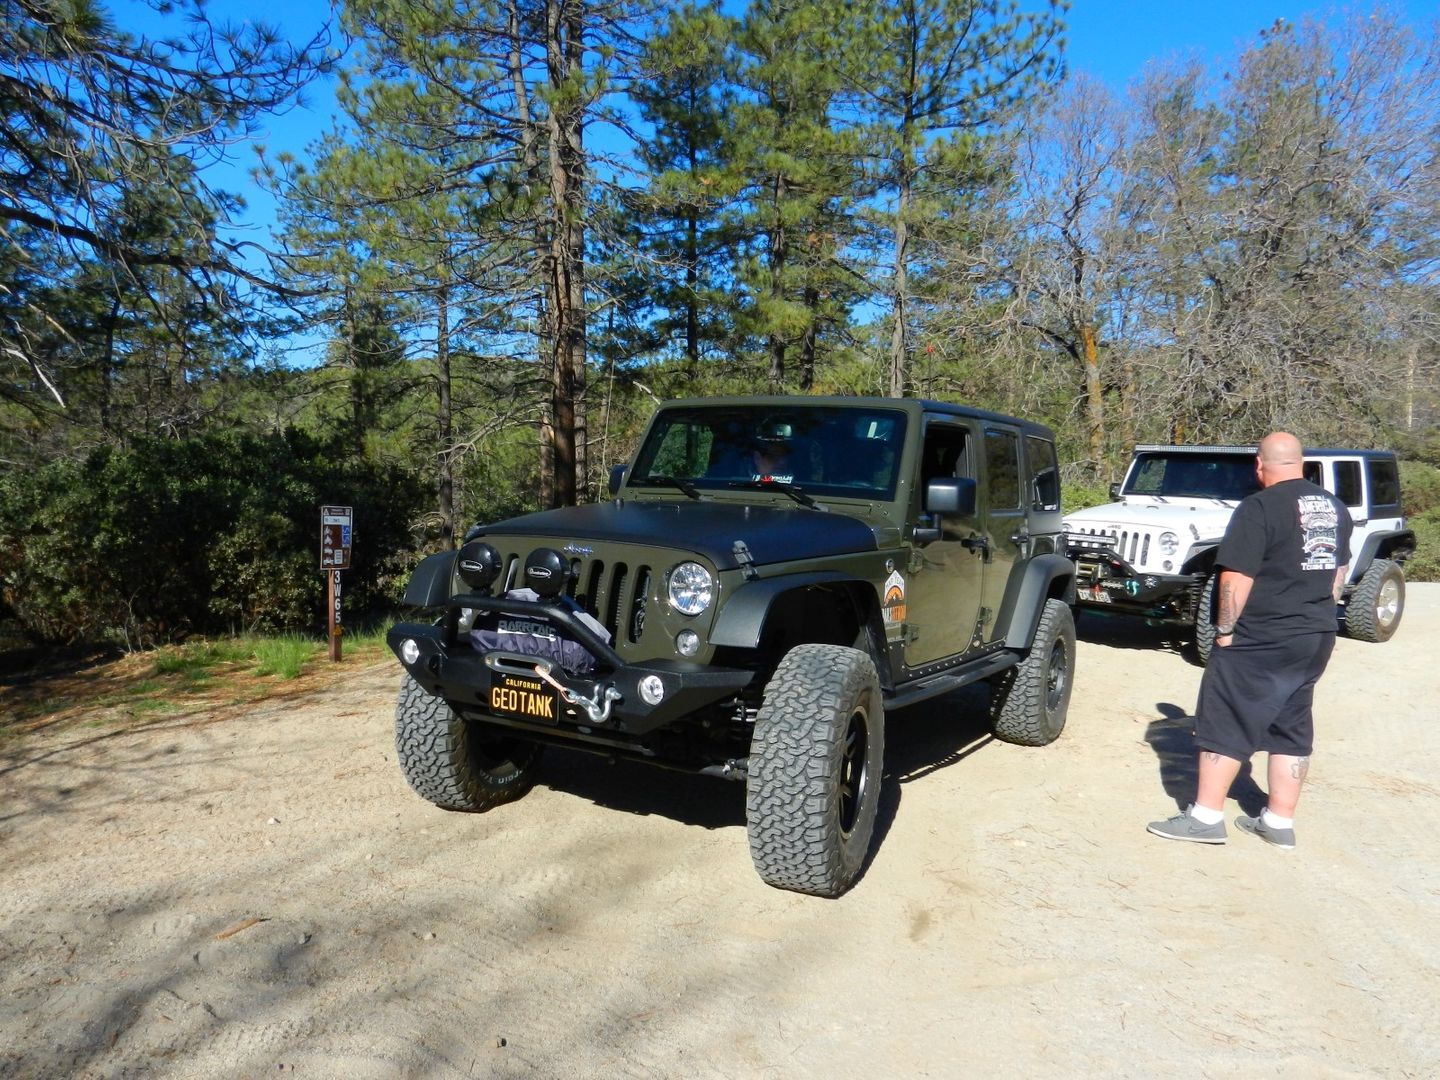 Trail Review: 3N34 - Willow Creek Jeep Trail